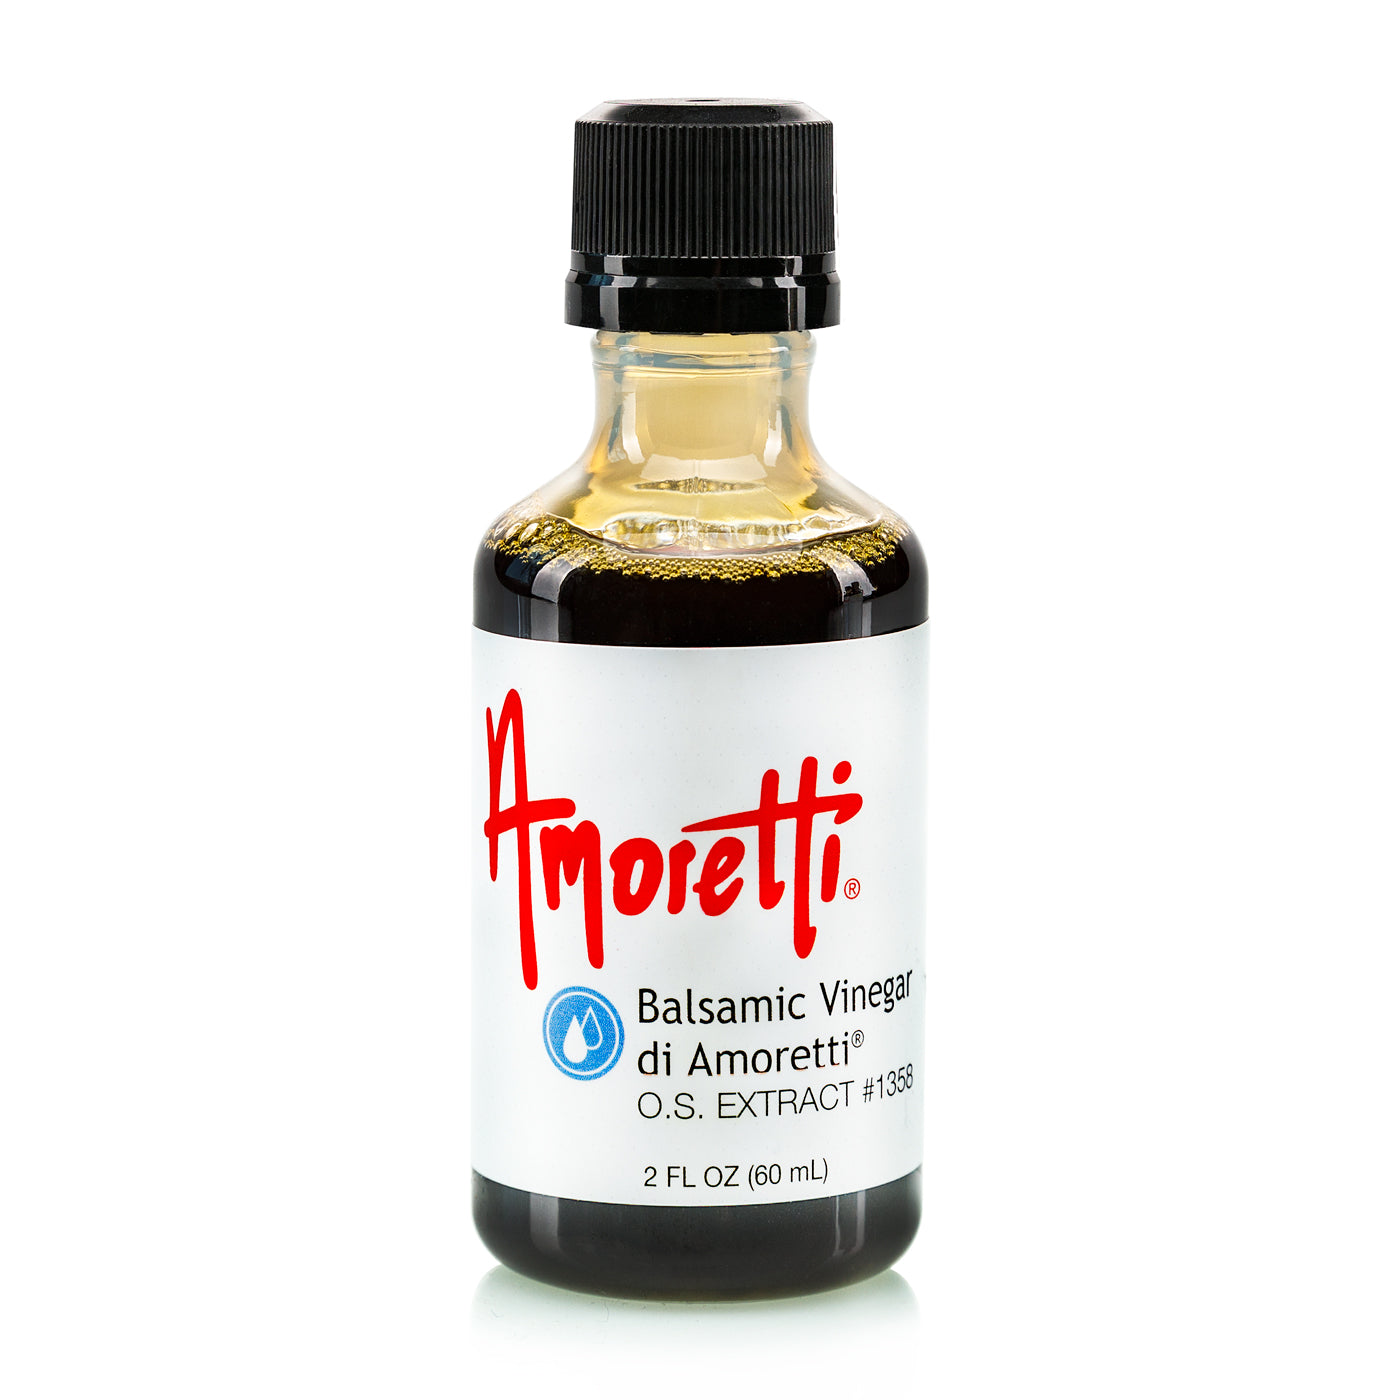 Balsamic Vinegar di Amaretti Extract Oil Soluble